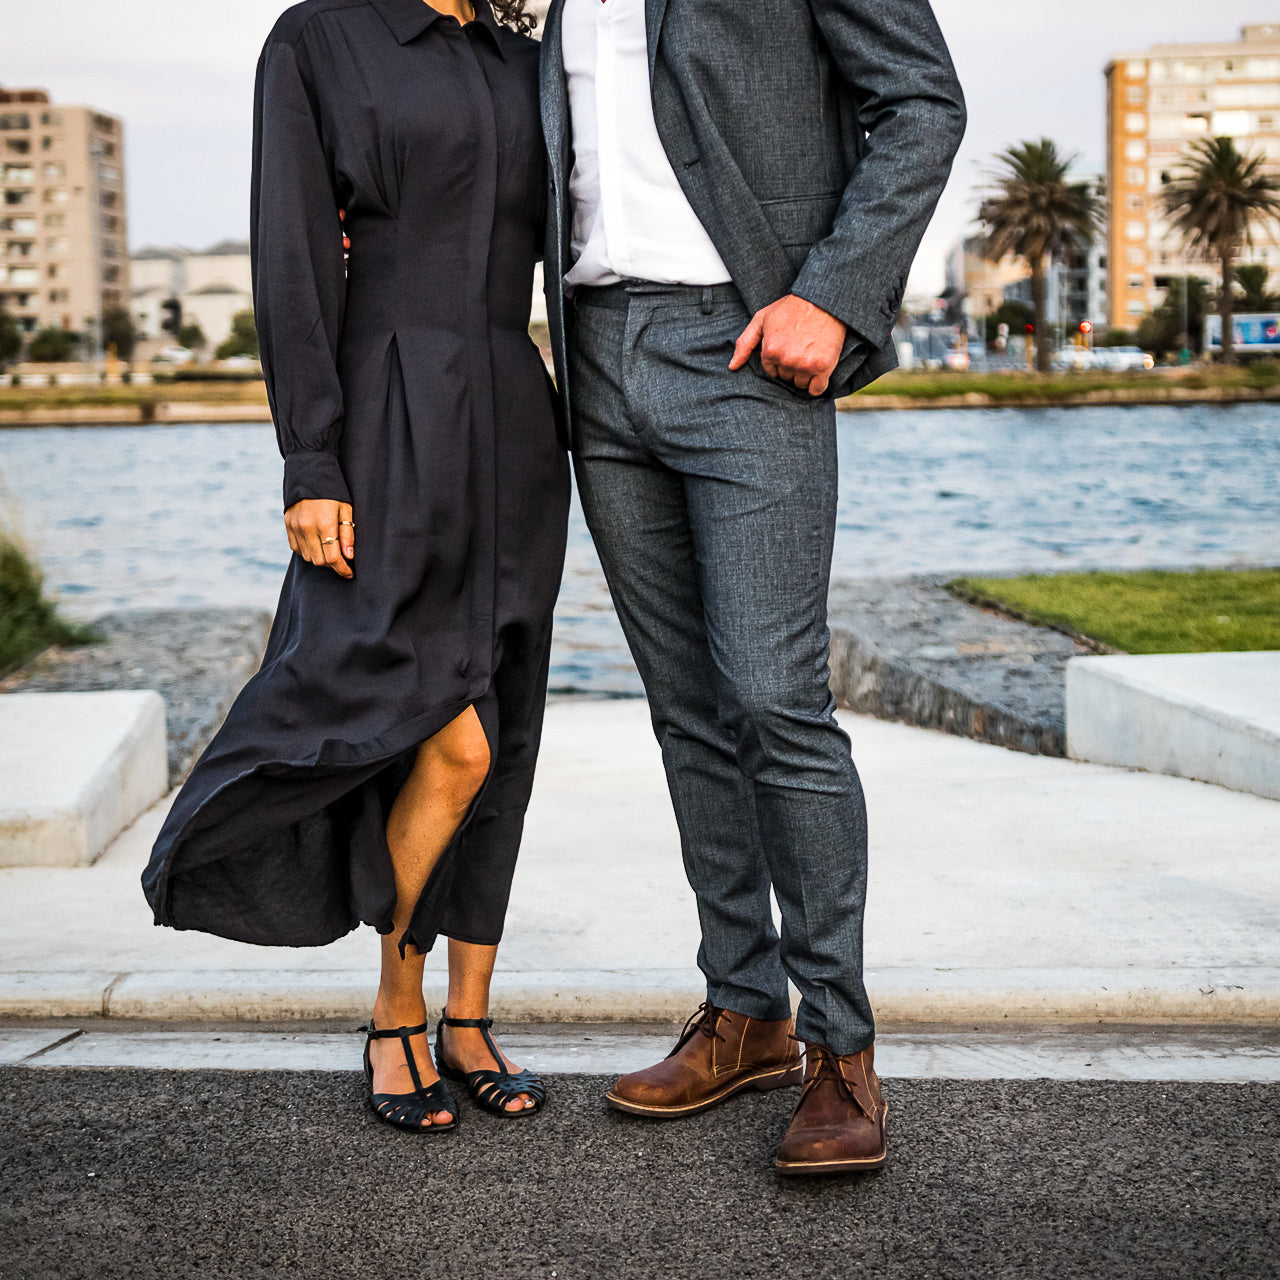 Veldskoen shoes and boots or known as vellies chukka boot ethically and sustainably handcrafted in South Africa sold in united states man and women standing infront on water dressign in smart night wear man wears grey suit and women wears long black dress